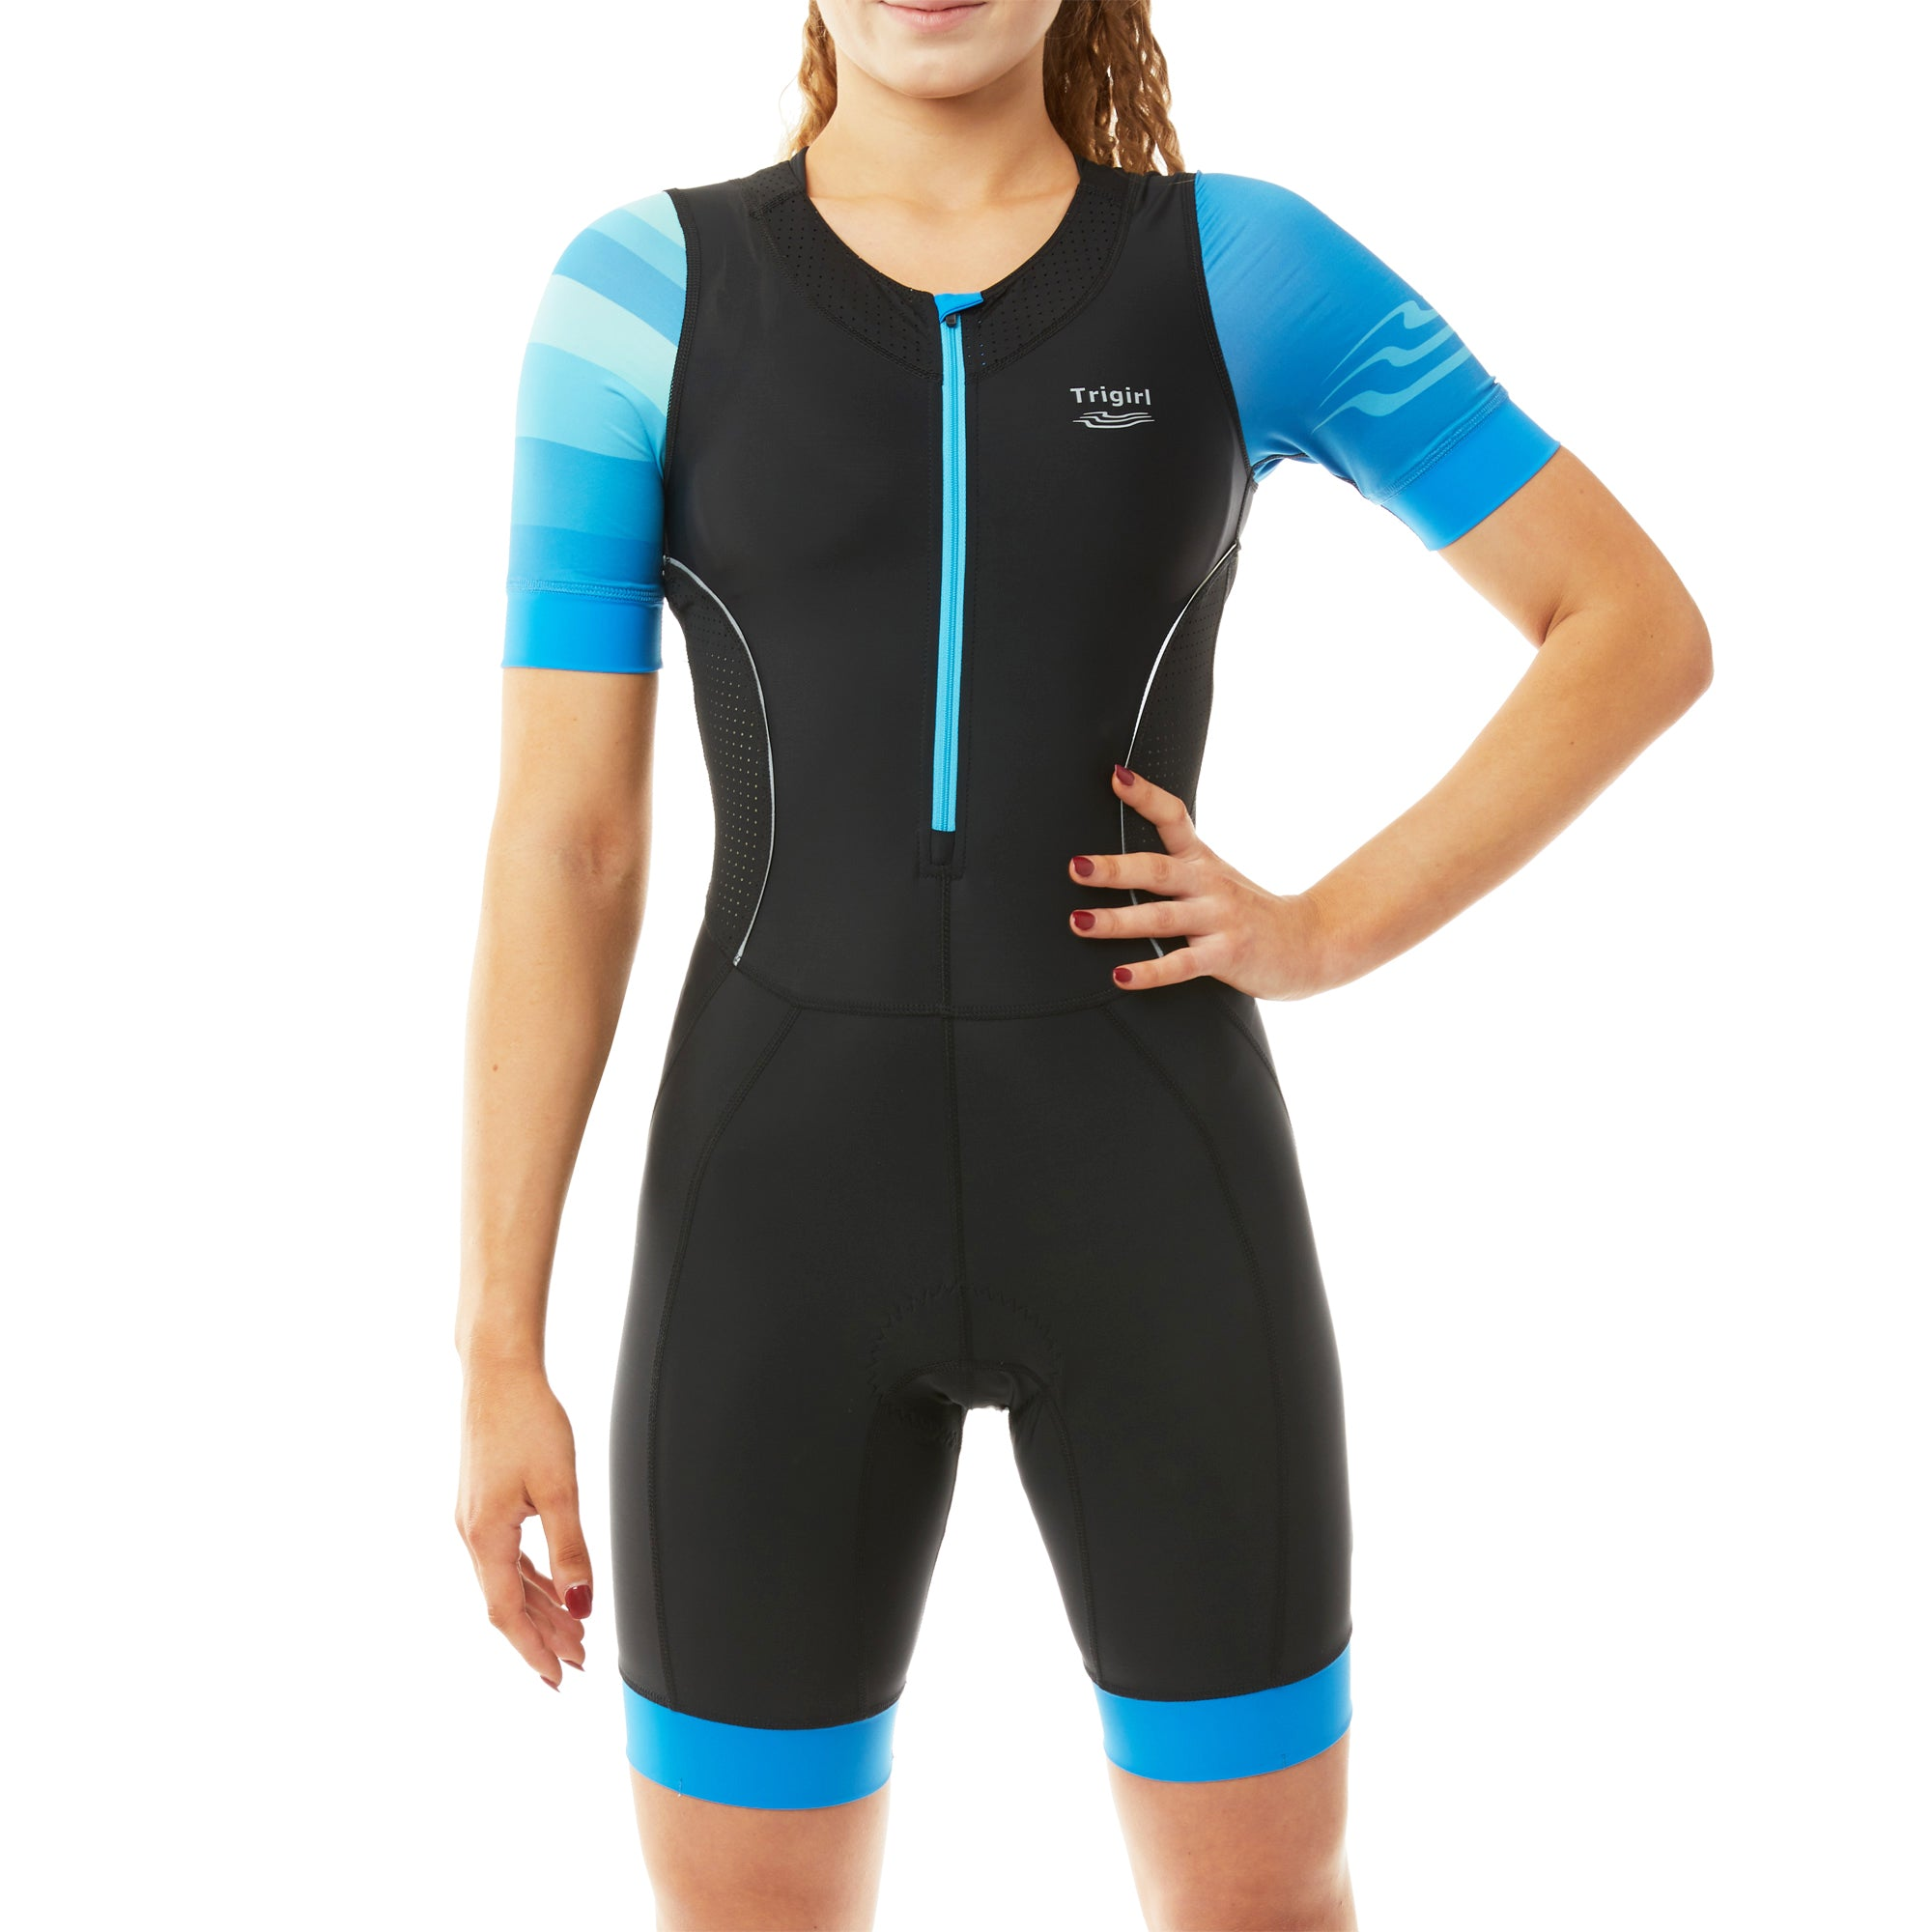 Star Trisuit with/ without Support in Mermaid Blue